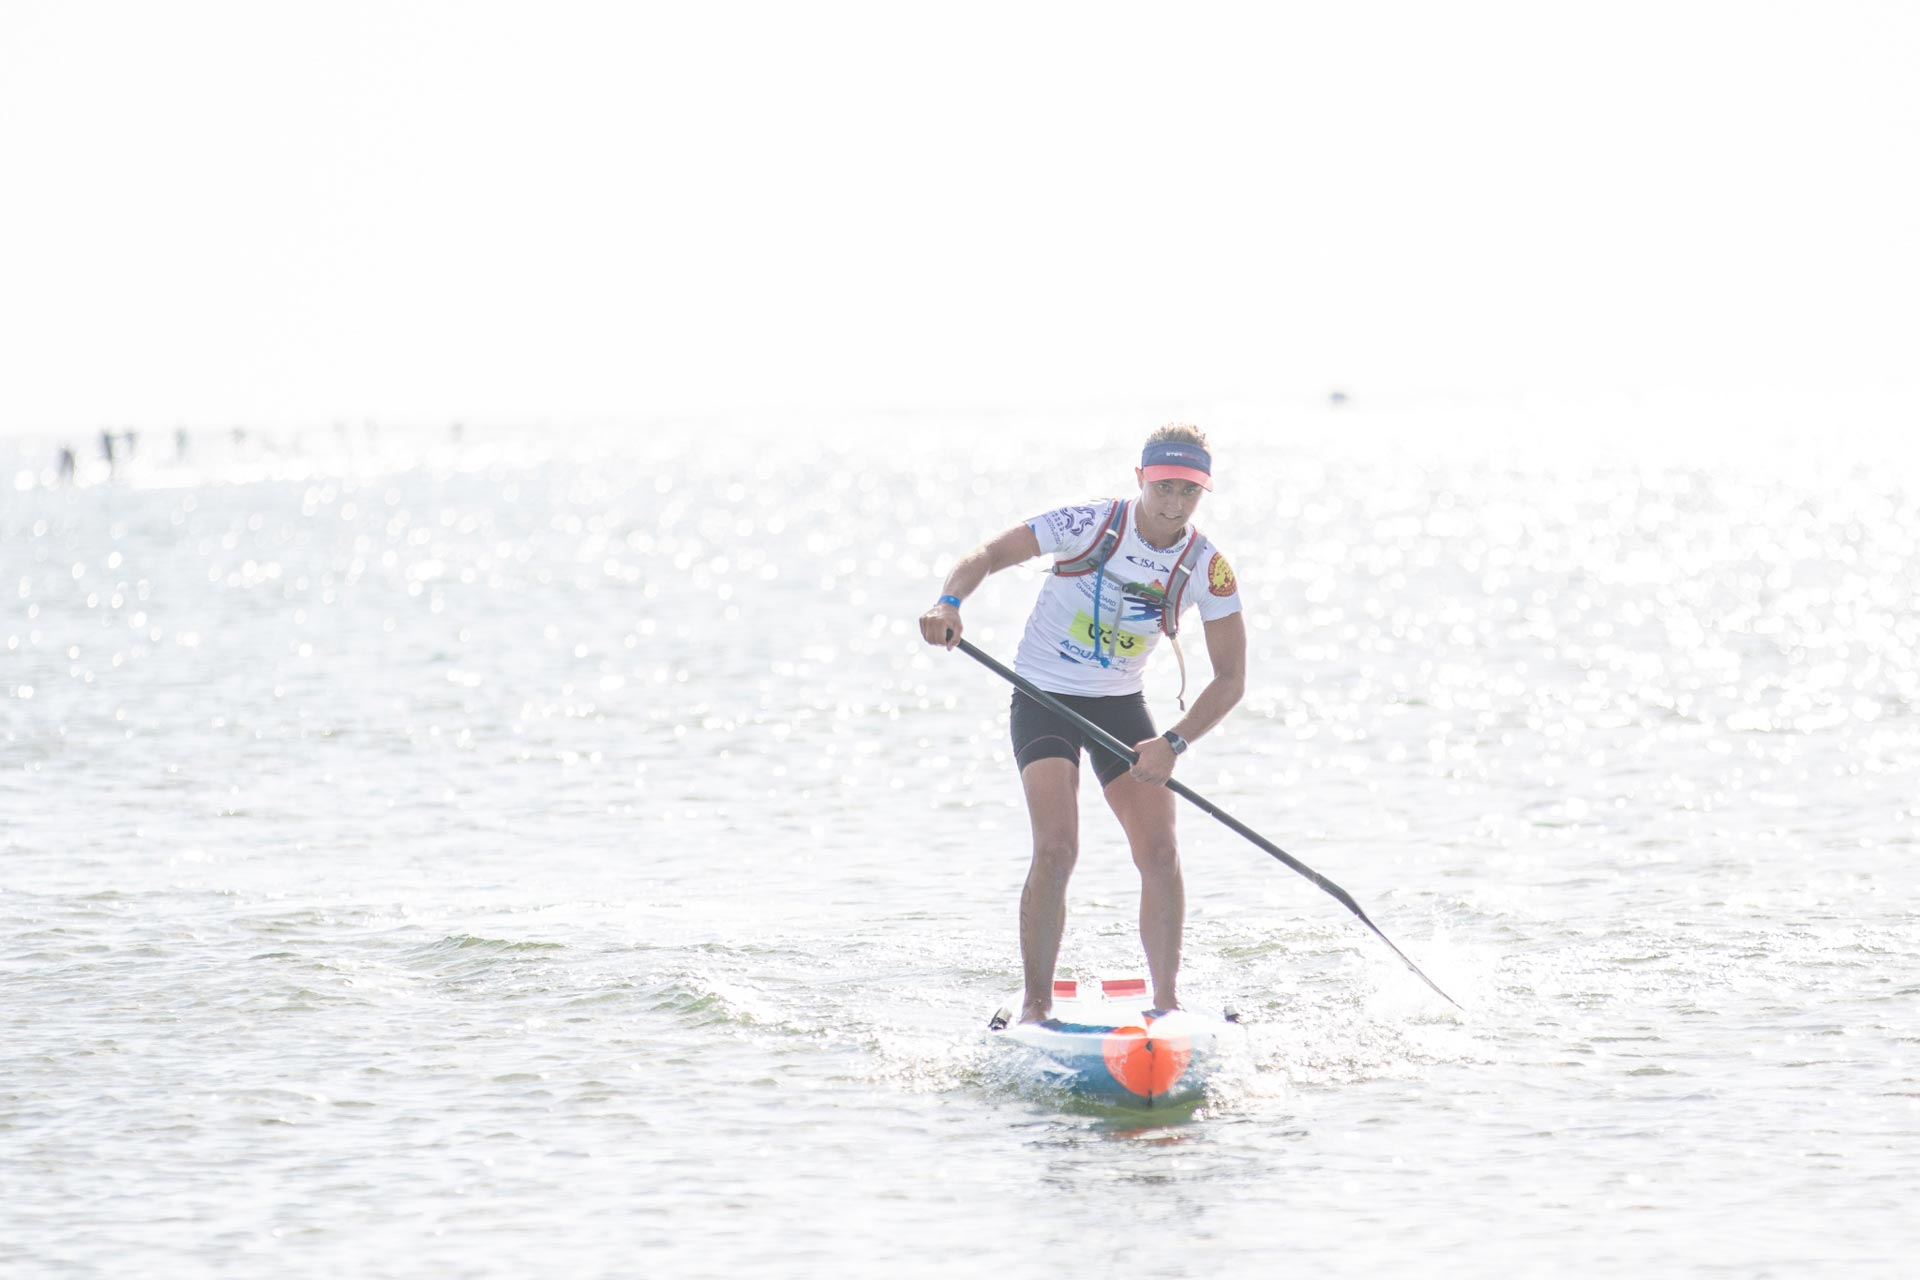 Shakira-Westdorp-Claims-Bronze-in-2018-ISA-SUP-Championships-Long-Distance-5